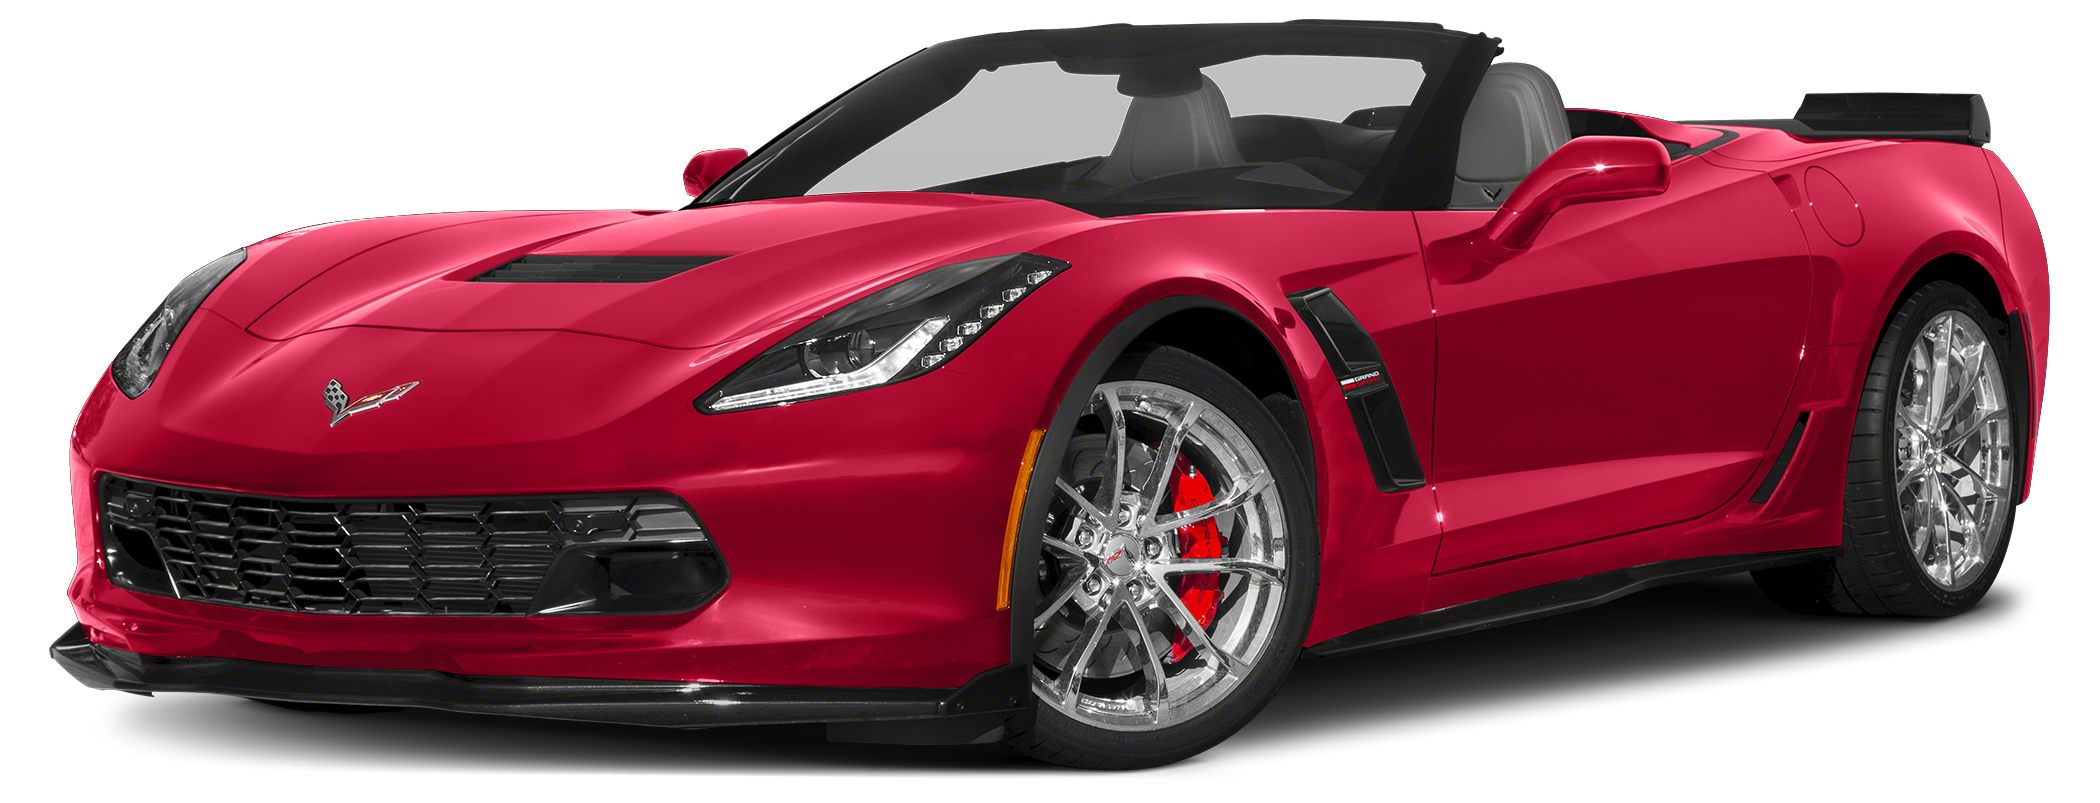 Corvette Stingray Grand-Sport Convertible